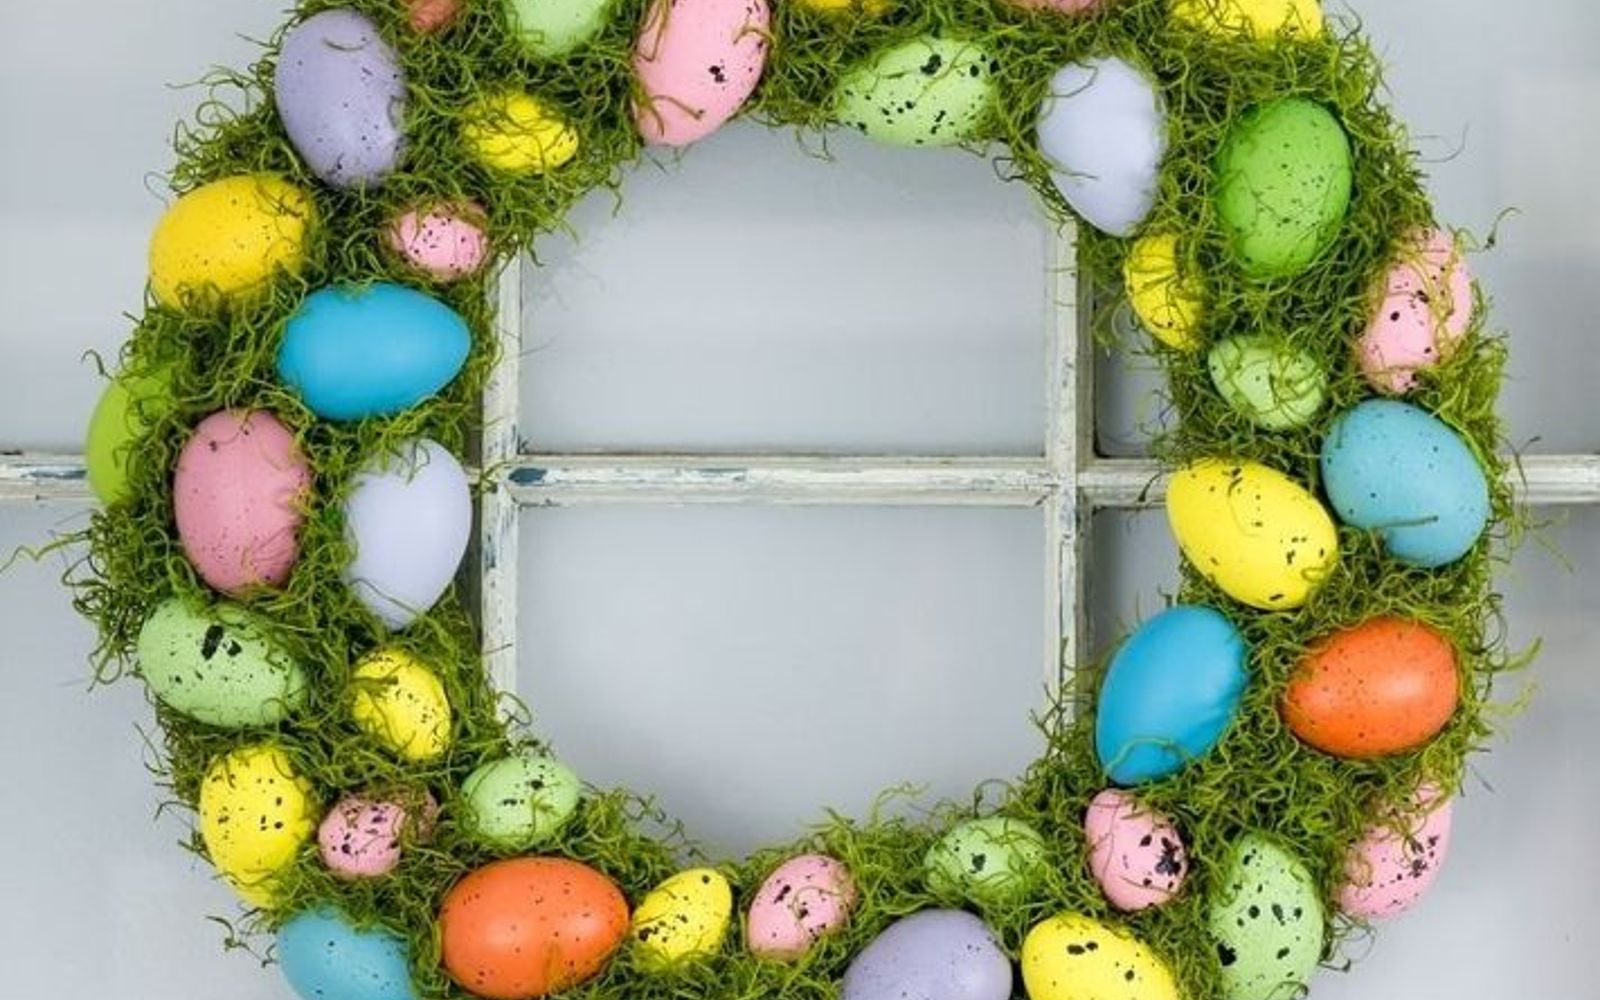 s 31 gorgeous spring wreaths that will make your neighbors smile, crafts, seasonal holiday decor, wreaths, Fill a wreath with colorful eggs